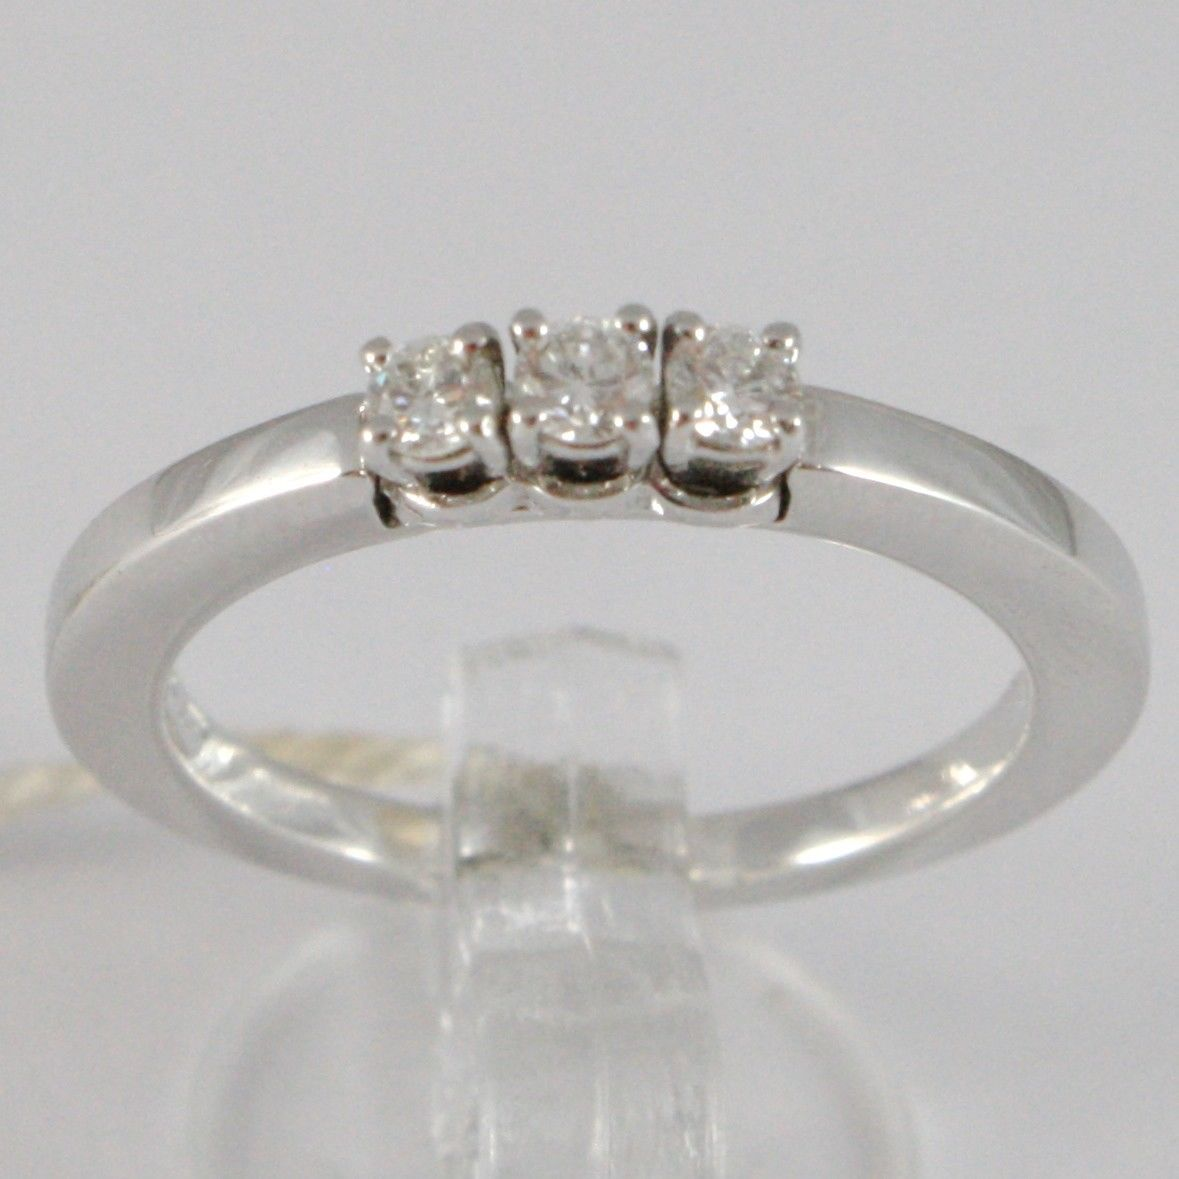 BAGUE EN OR BLANC 750 18K, TRILOGY 3 DIAMANTS CARAT EN TOUT 0.18, TIGE CARRÉ